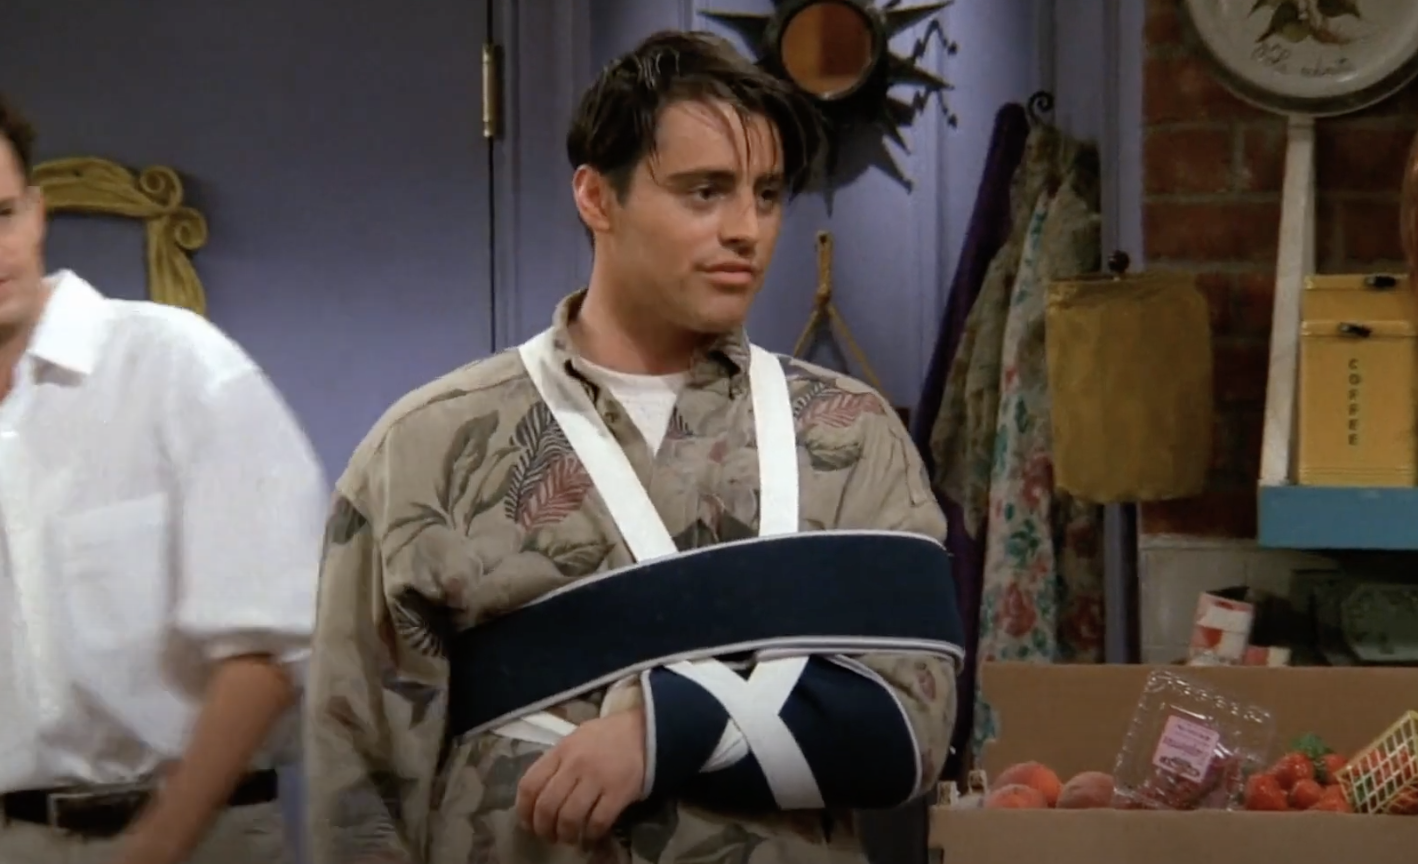 Joey's arm in a sling